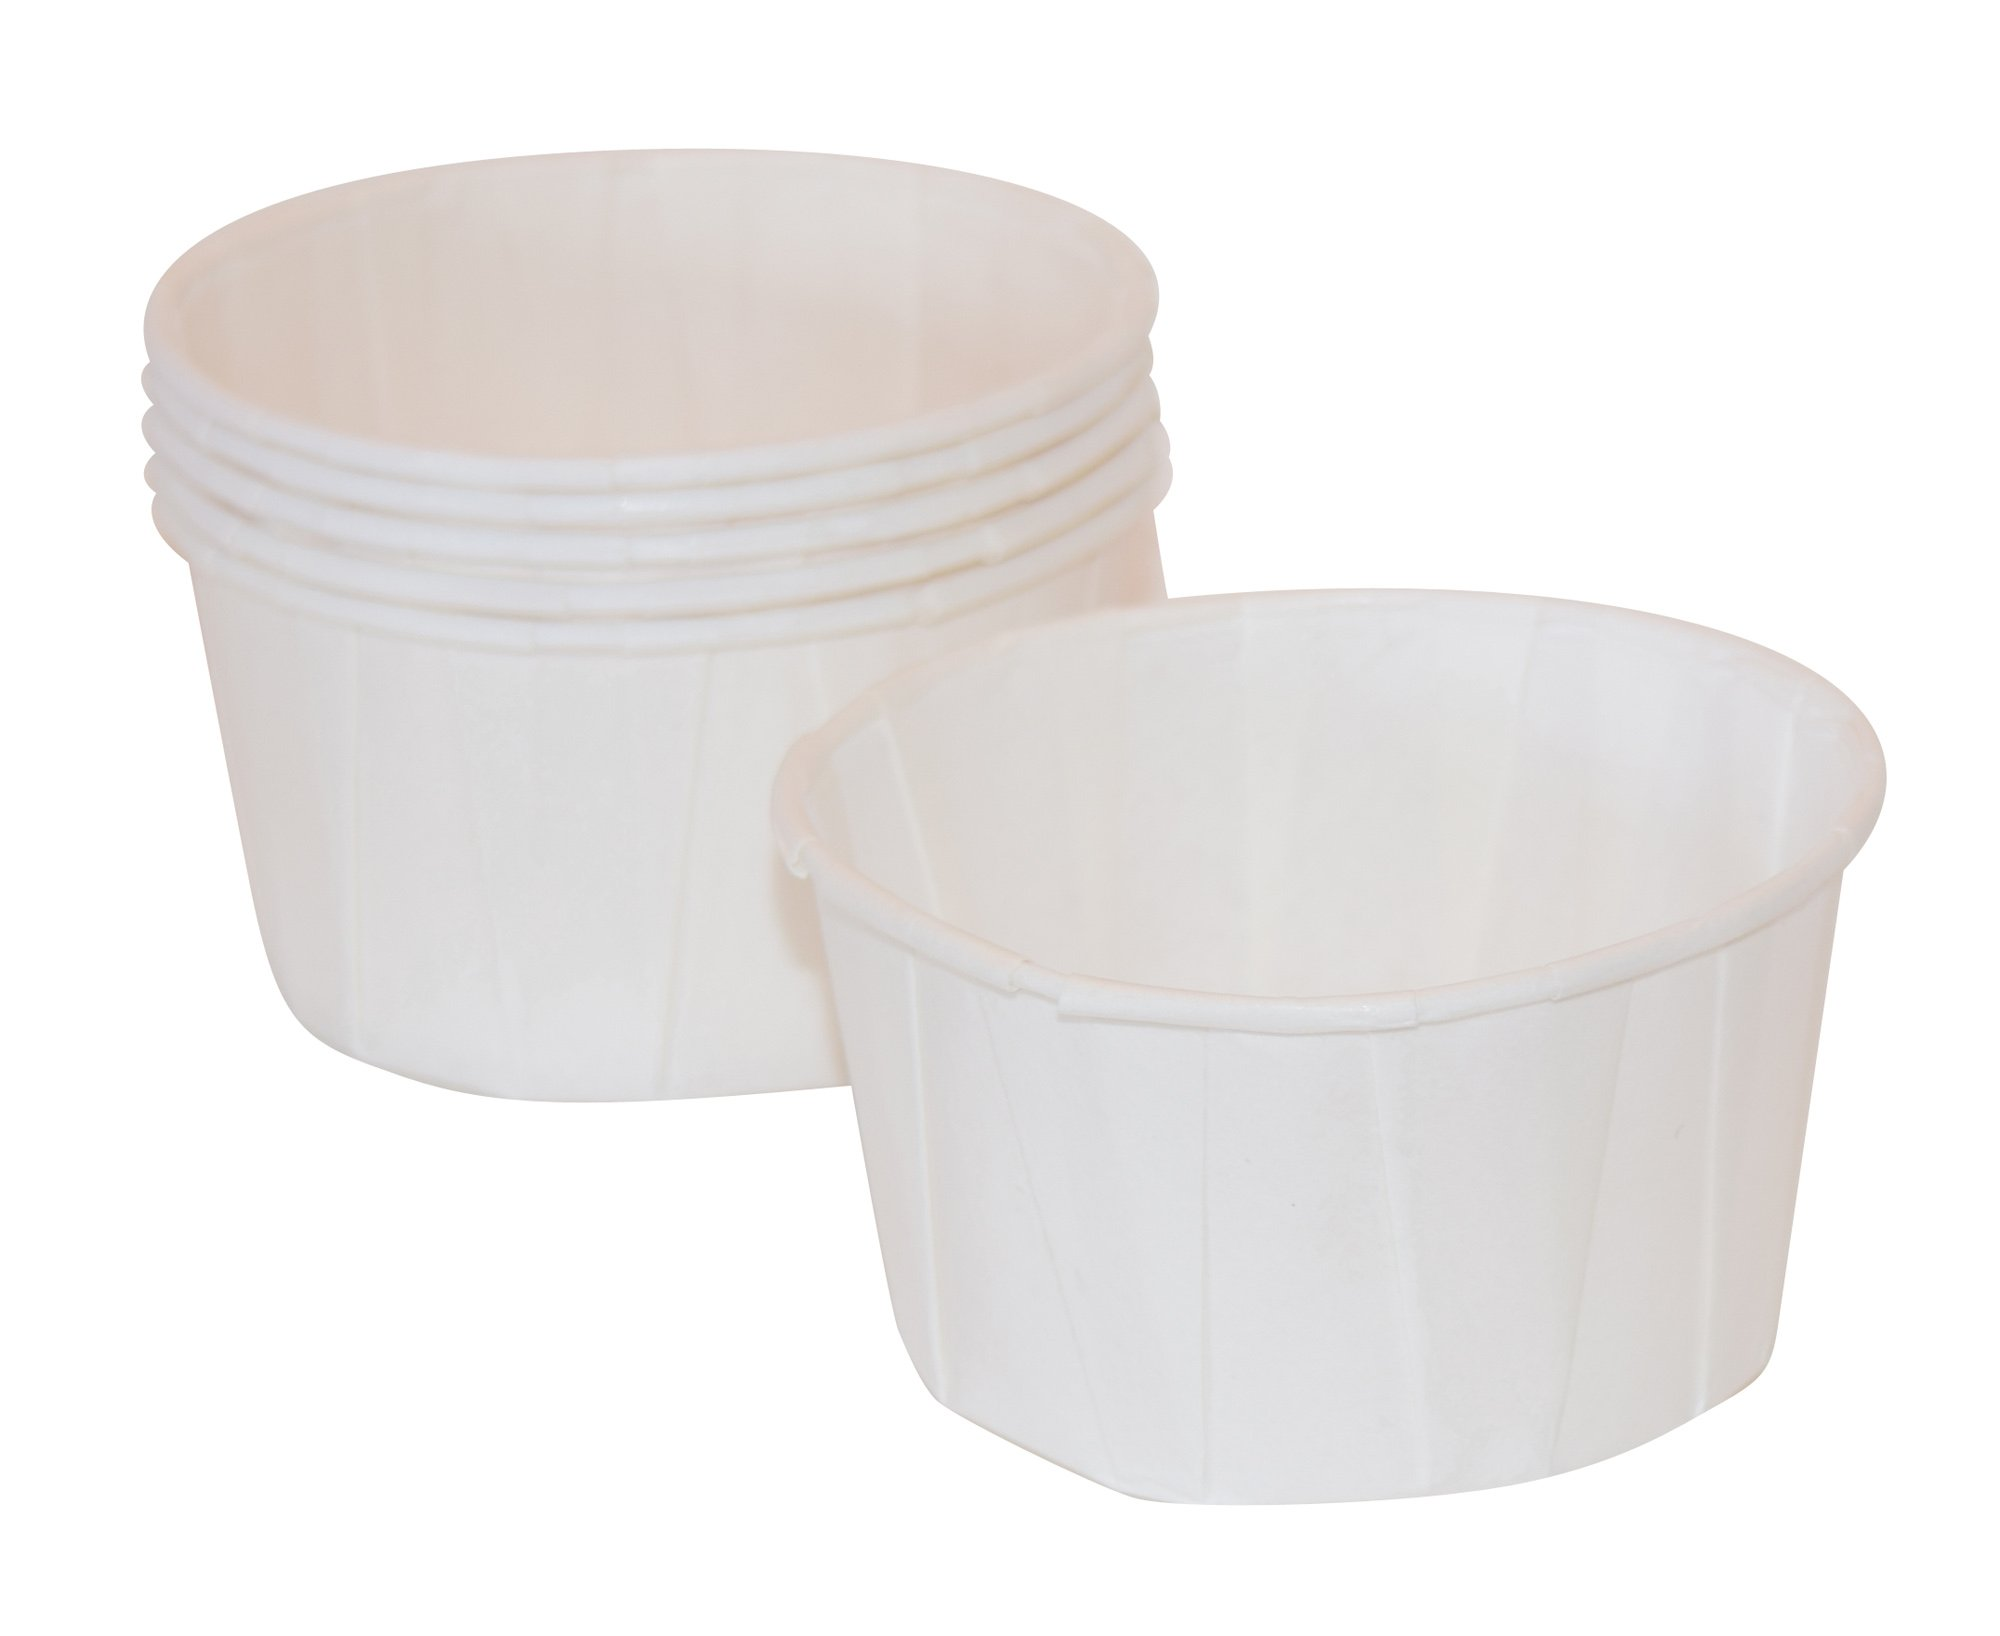 4 oz, Paper Souffle Portion Cups, Value set of 500 by JA Kitchens